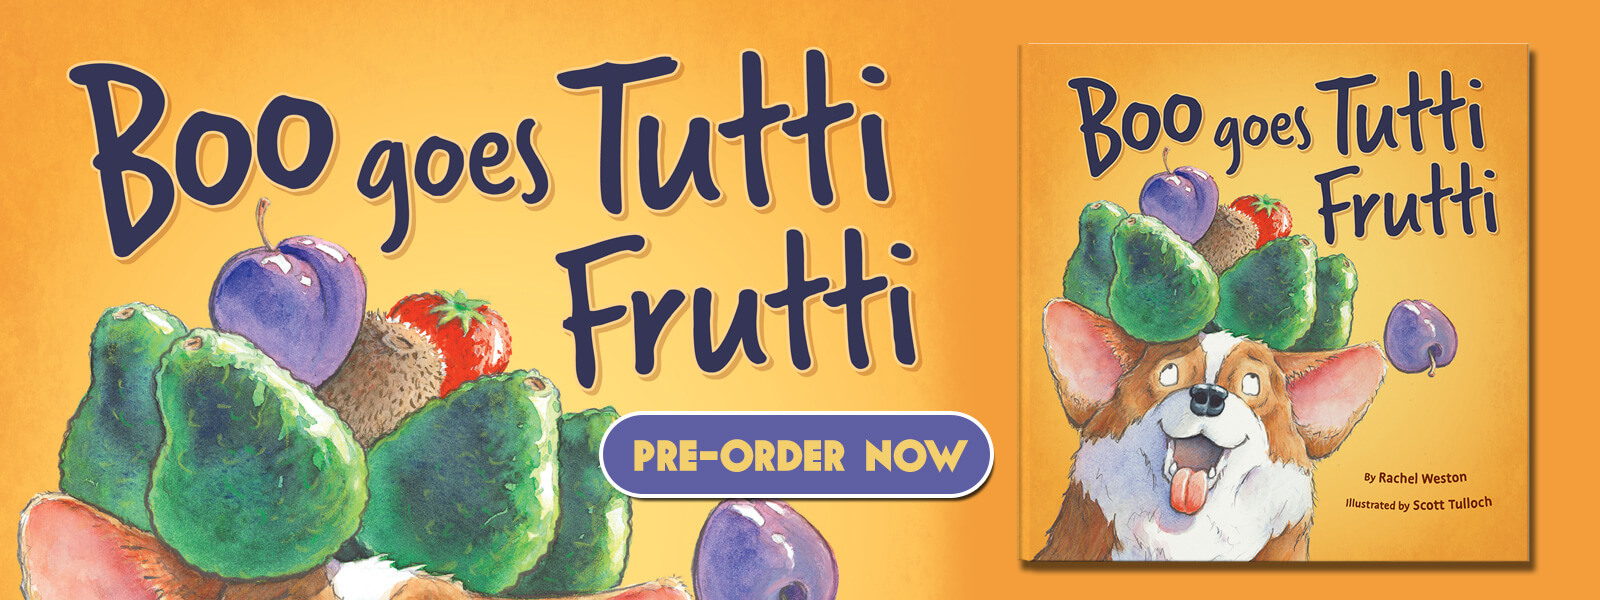 boo goes tutti frutti childrens fiction book rachel weston